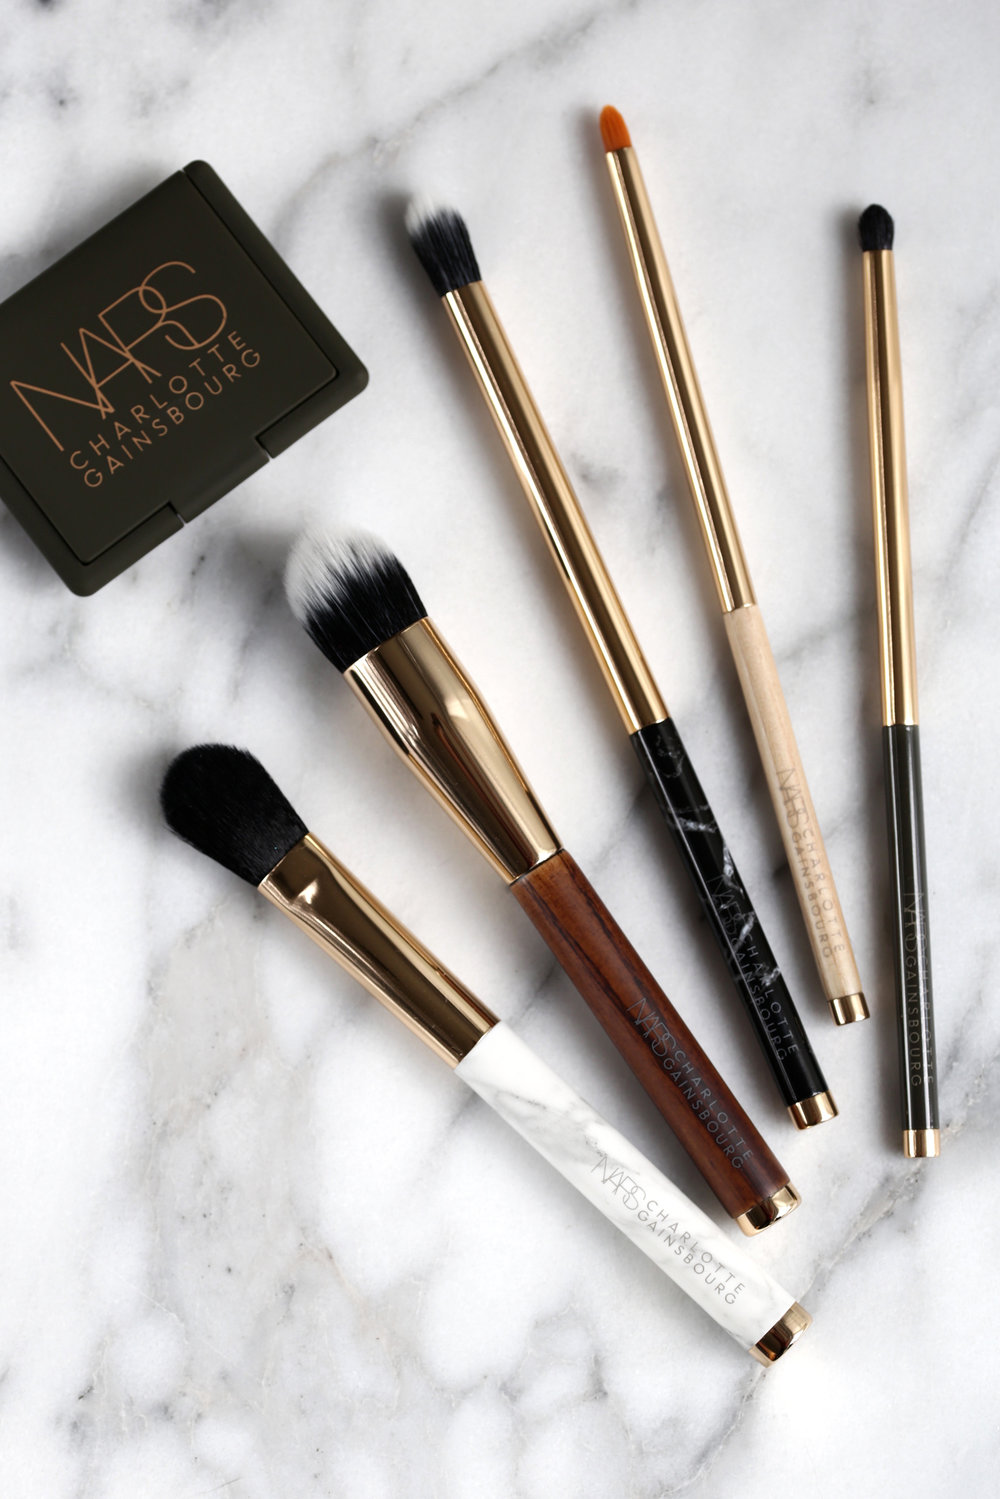 b e a u t y  - NARS x Charlotte Gainsbourg brush set